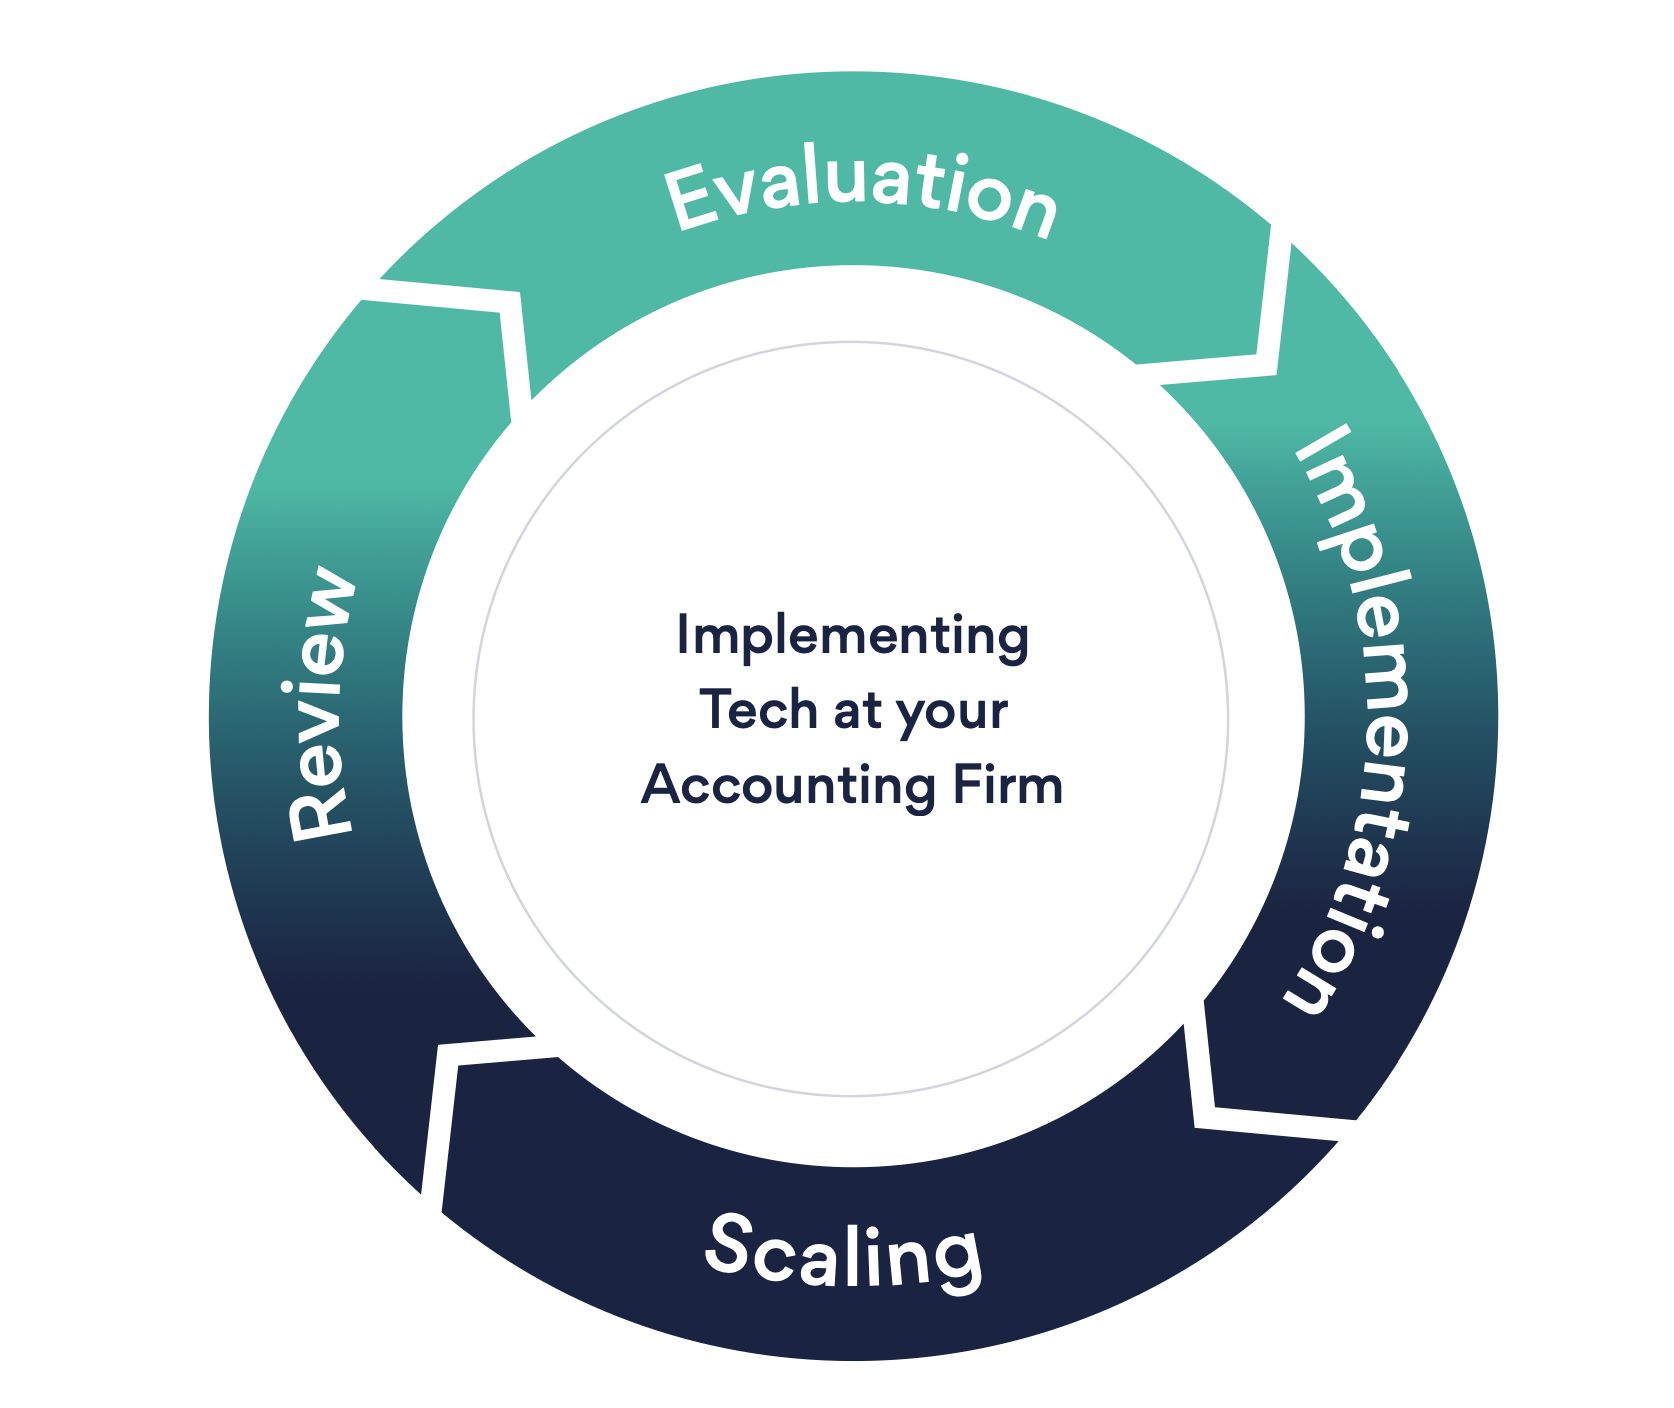 Evaluation, Implementation, Scaling and Review.